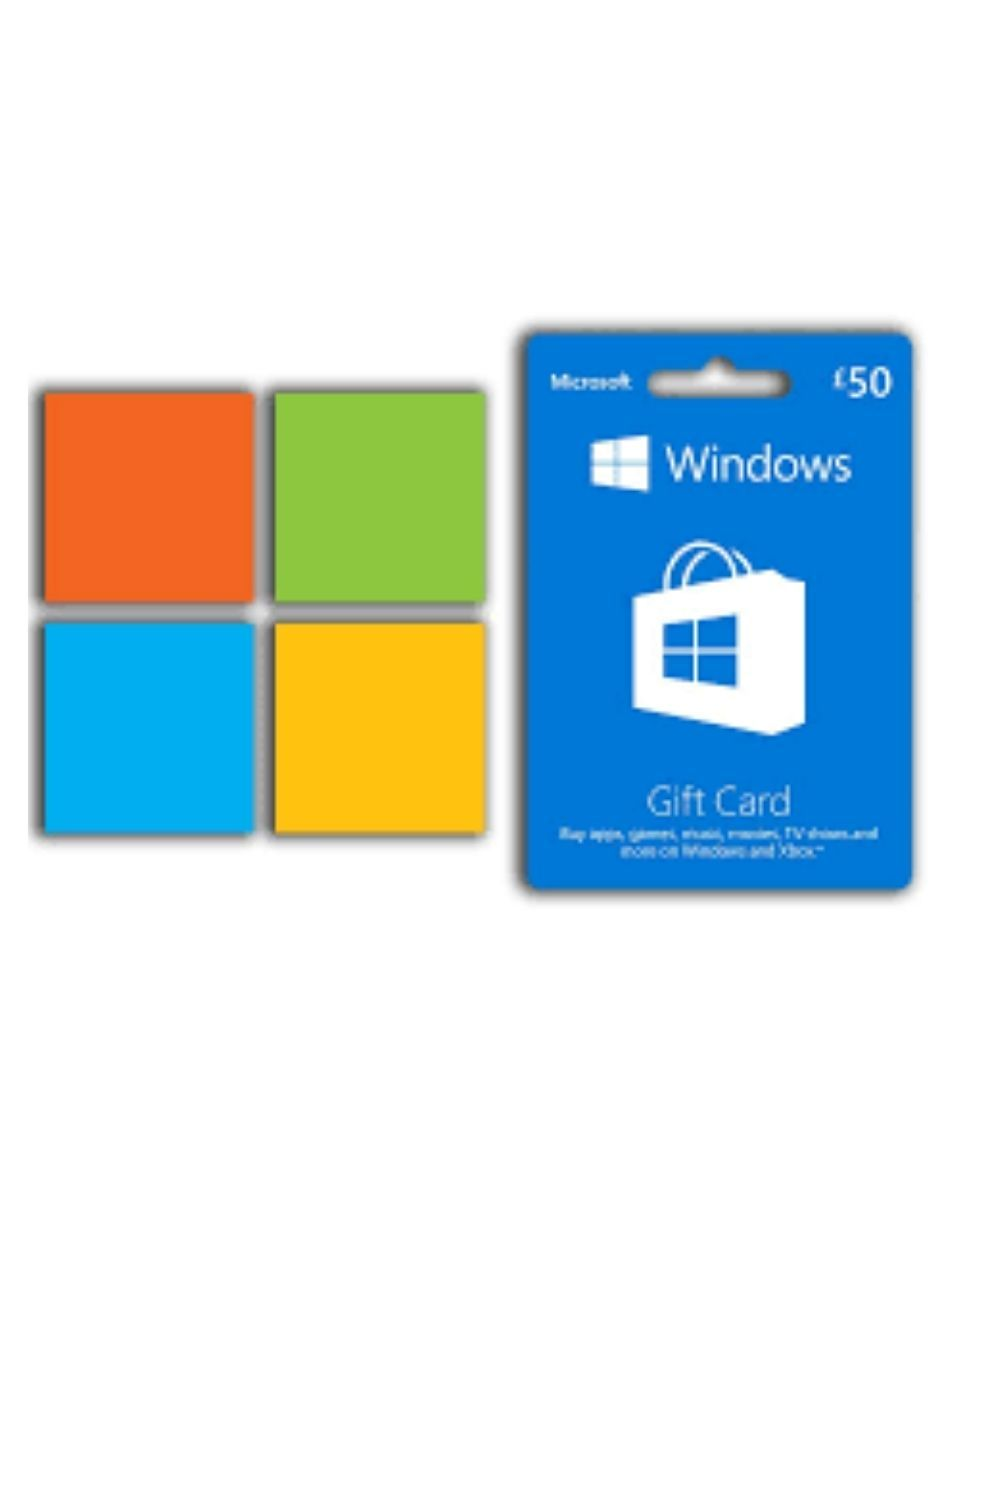 Microsoft Gift Card In 2021 Gift Card Xbox Gift Card Xbox Gifts